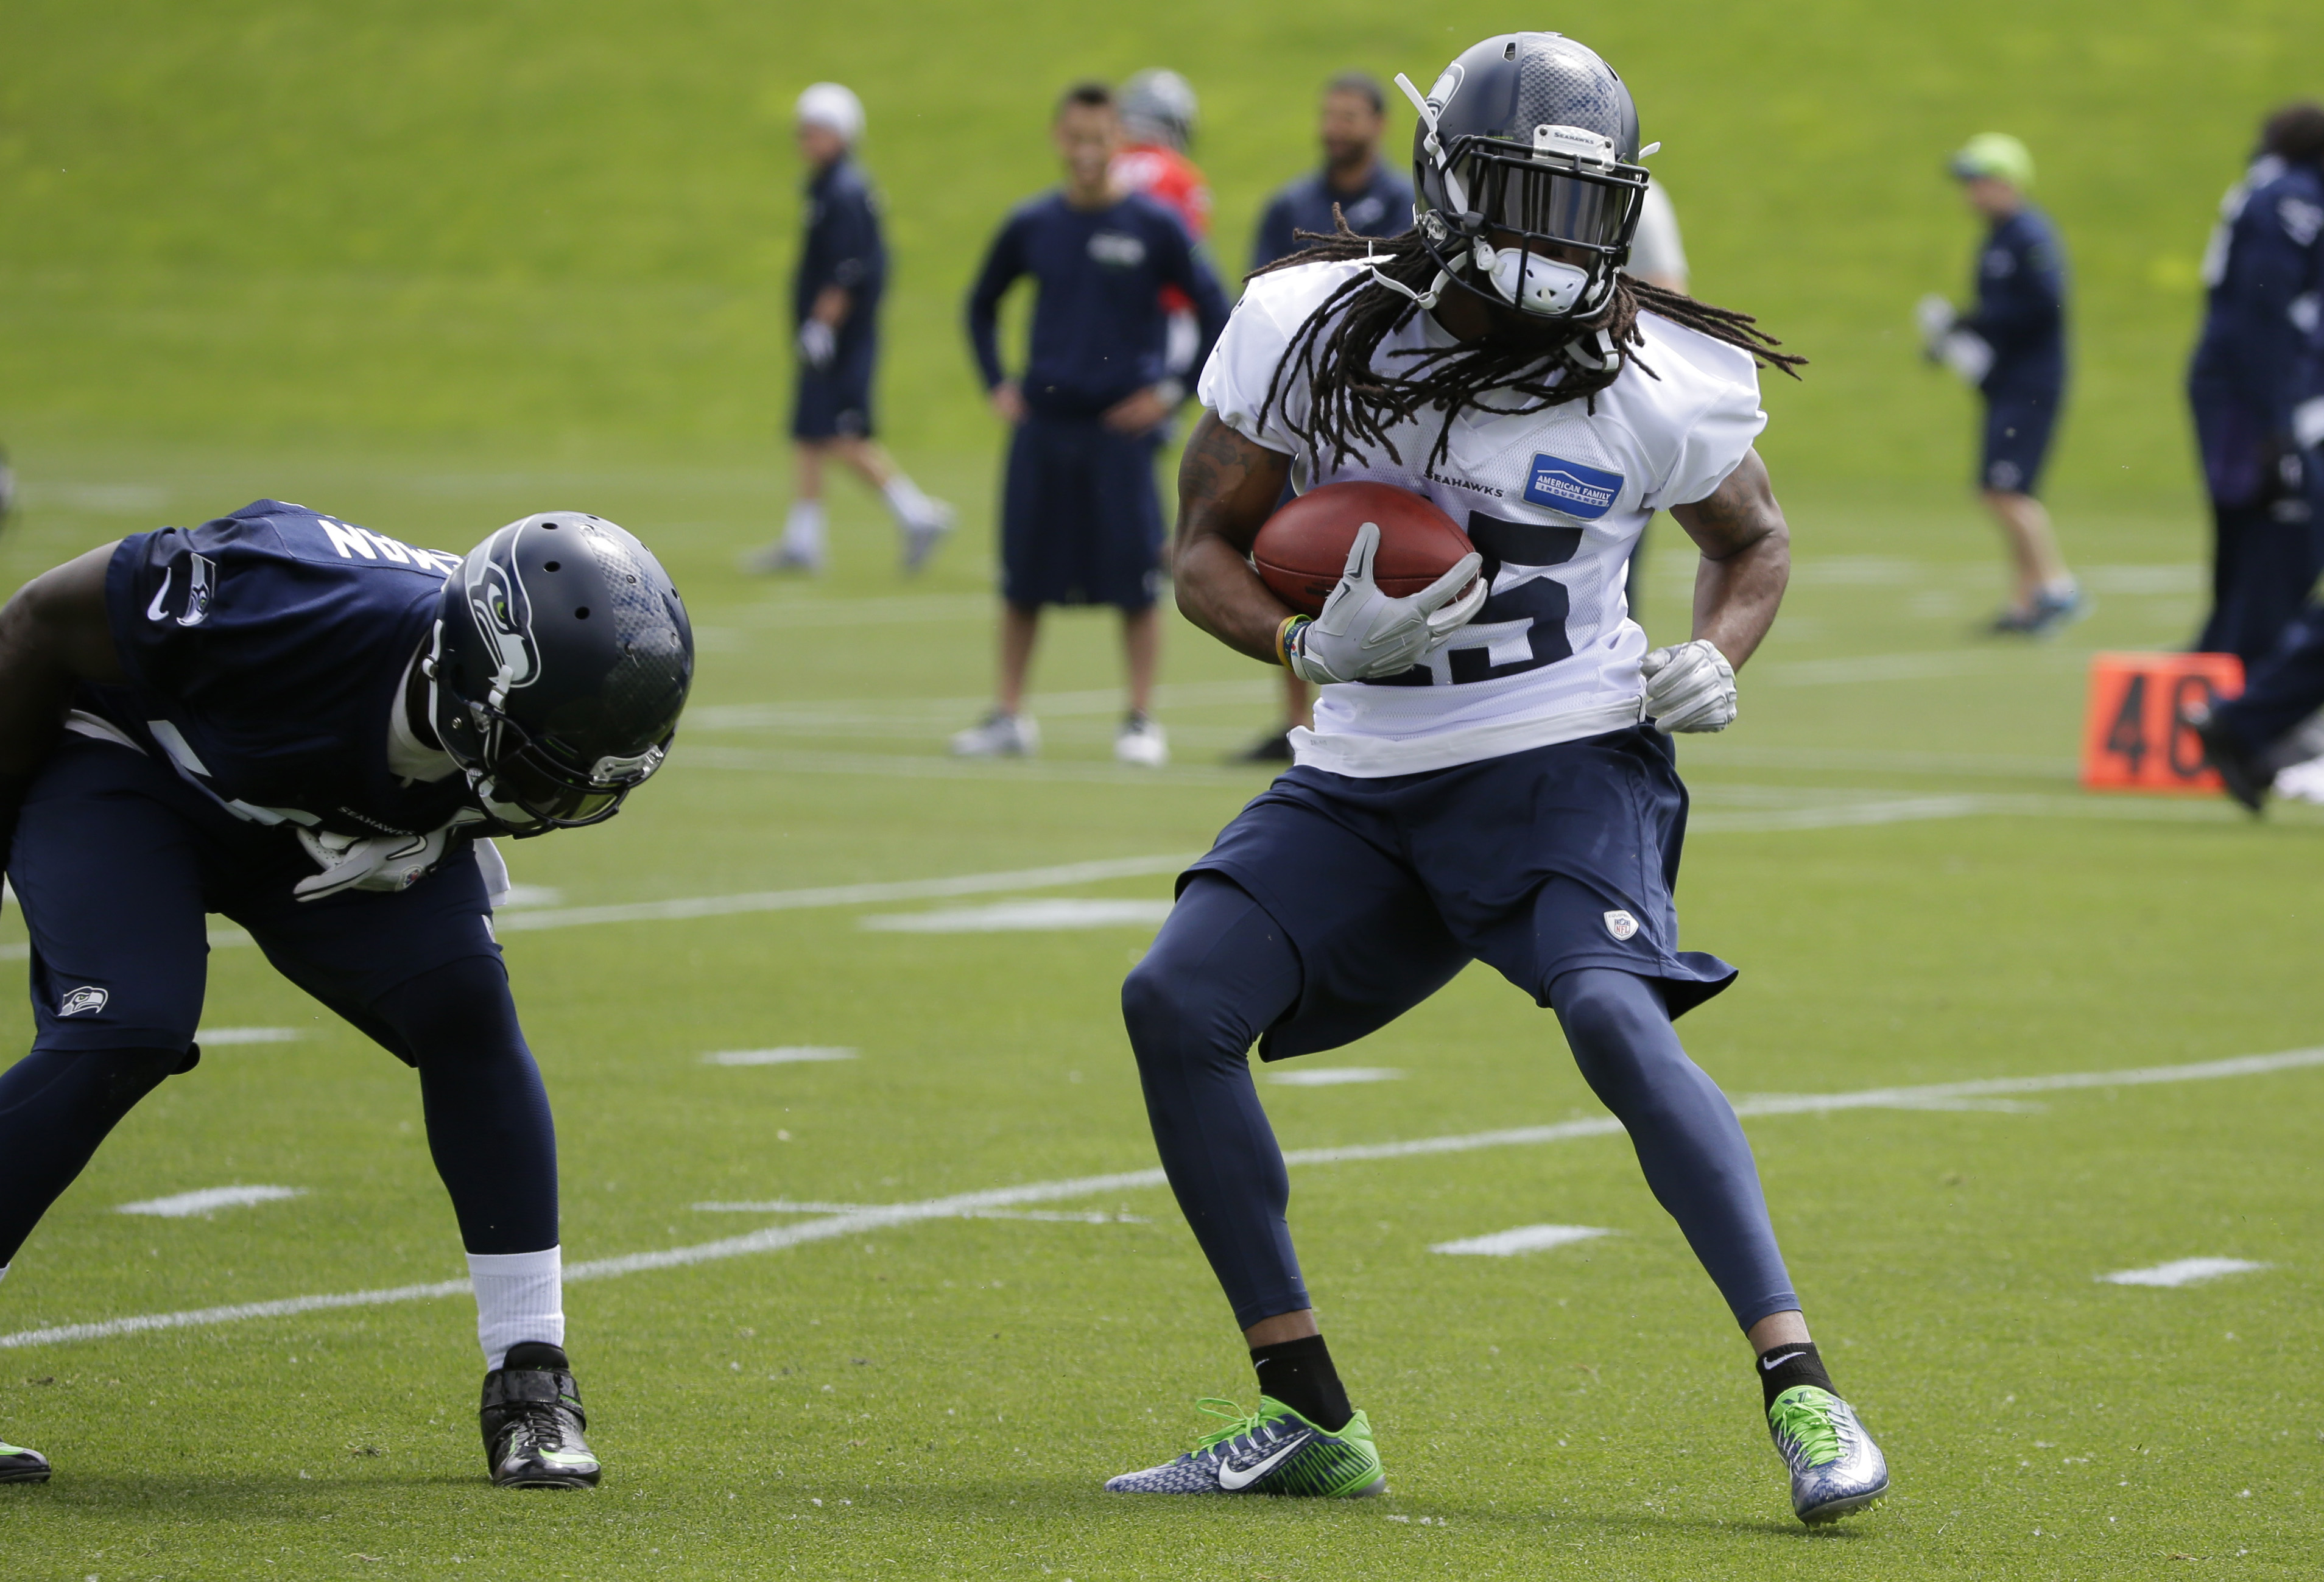 Seattle Seahawks cornerback Richard Sherman, right, playfully jukes around fullback Derrick Coleman, left, as he runs with the ball during an organized team activity Tuesday, May 26, 2015, in Renton, Wash. (AP Photo/Ted S. Warren)